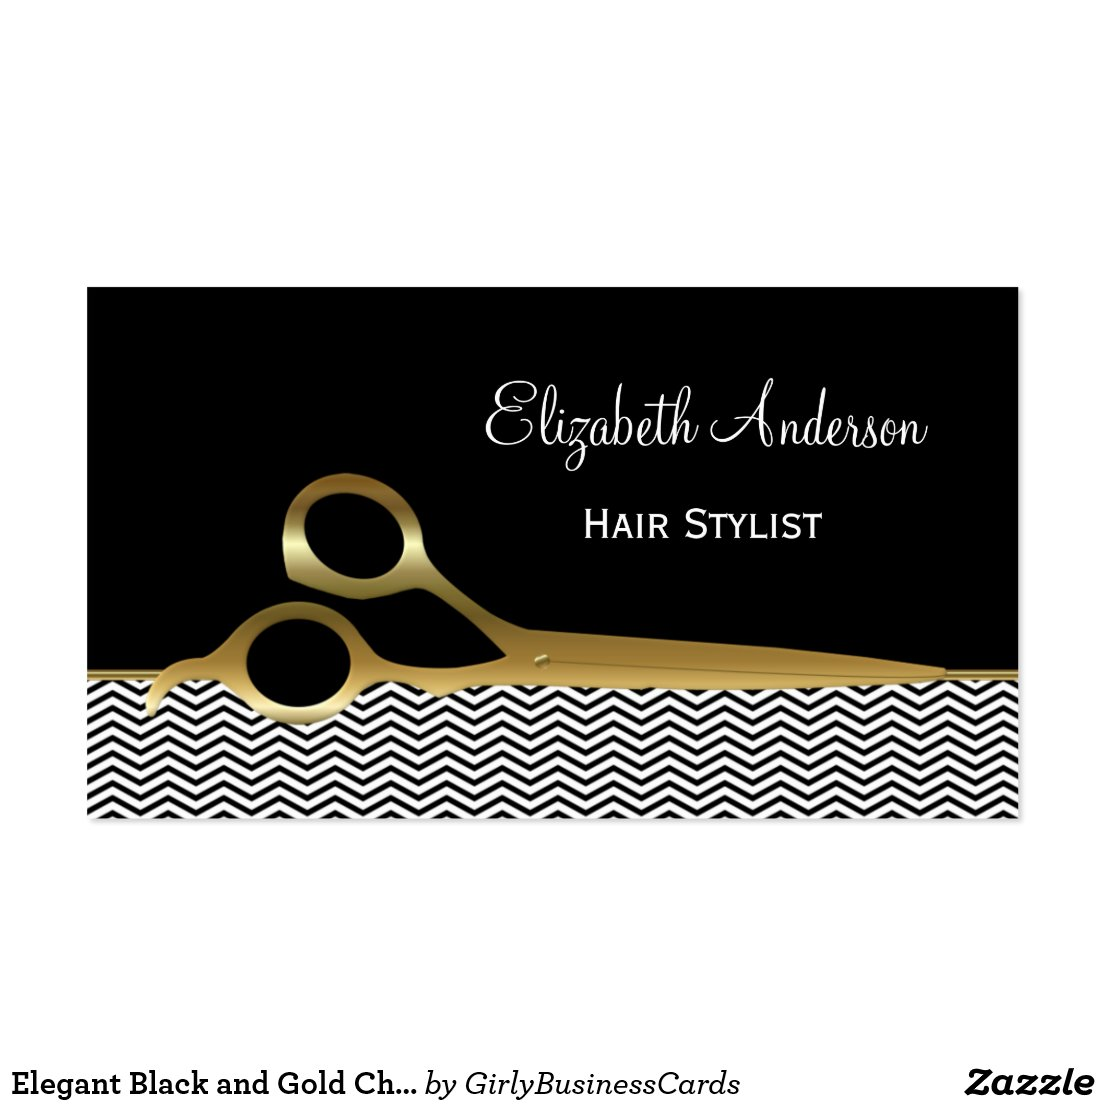 Hair stylist business cards templates gallery business cards ideas images hair stylist business card templates free source zazzle report hair stylist business card templates flashek flashek Choice Image